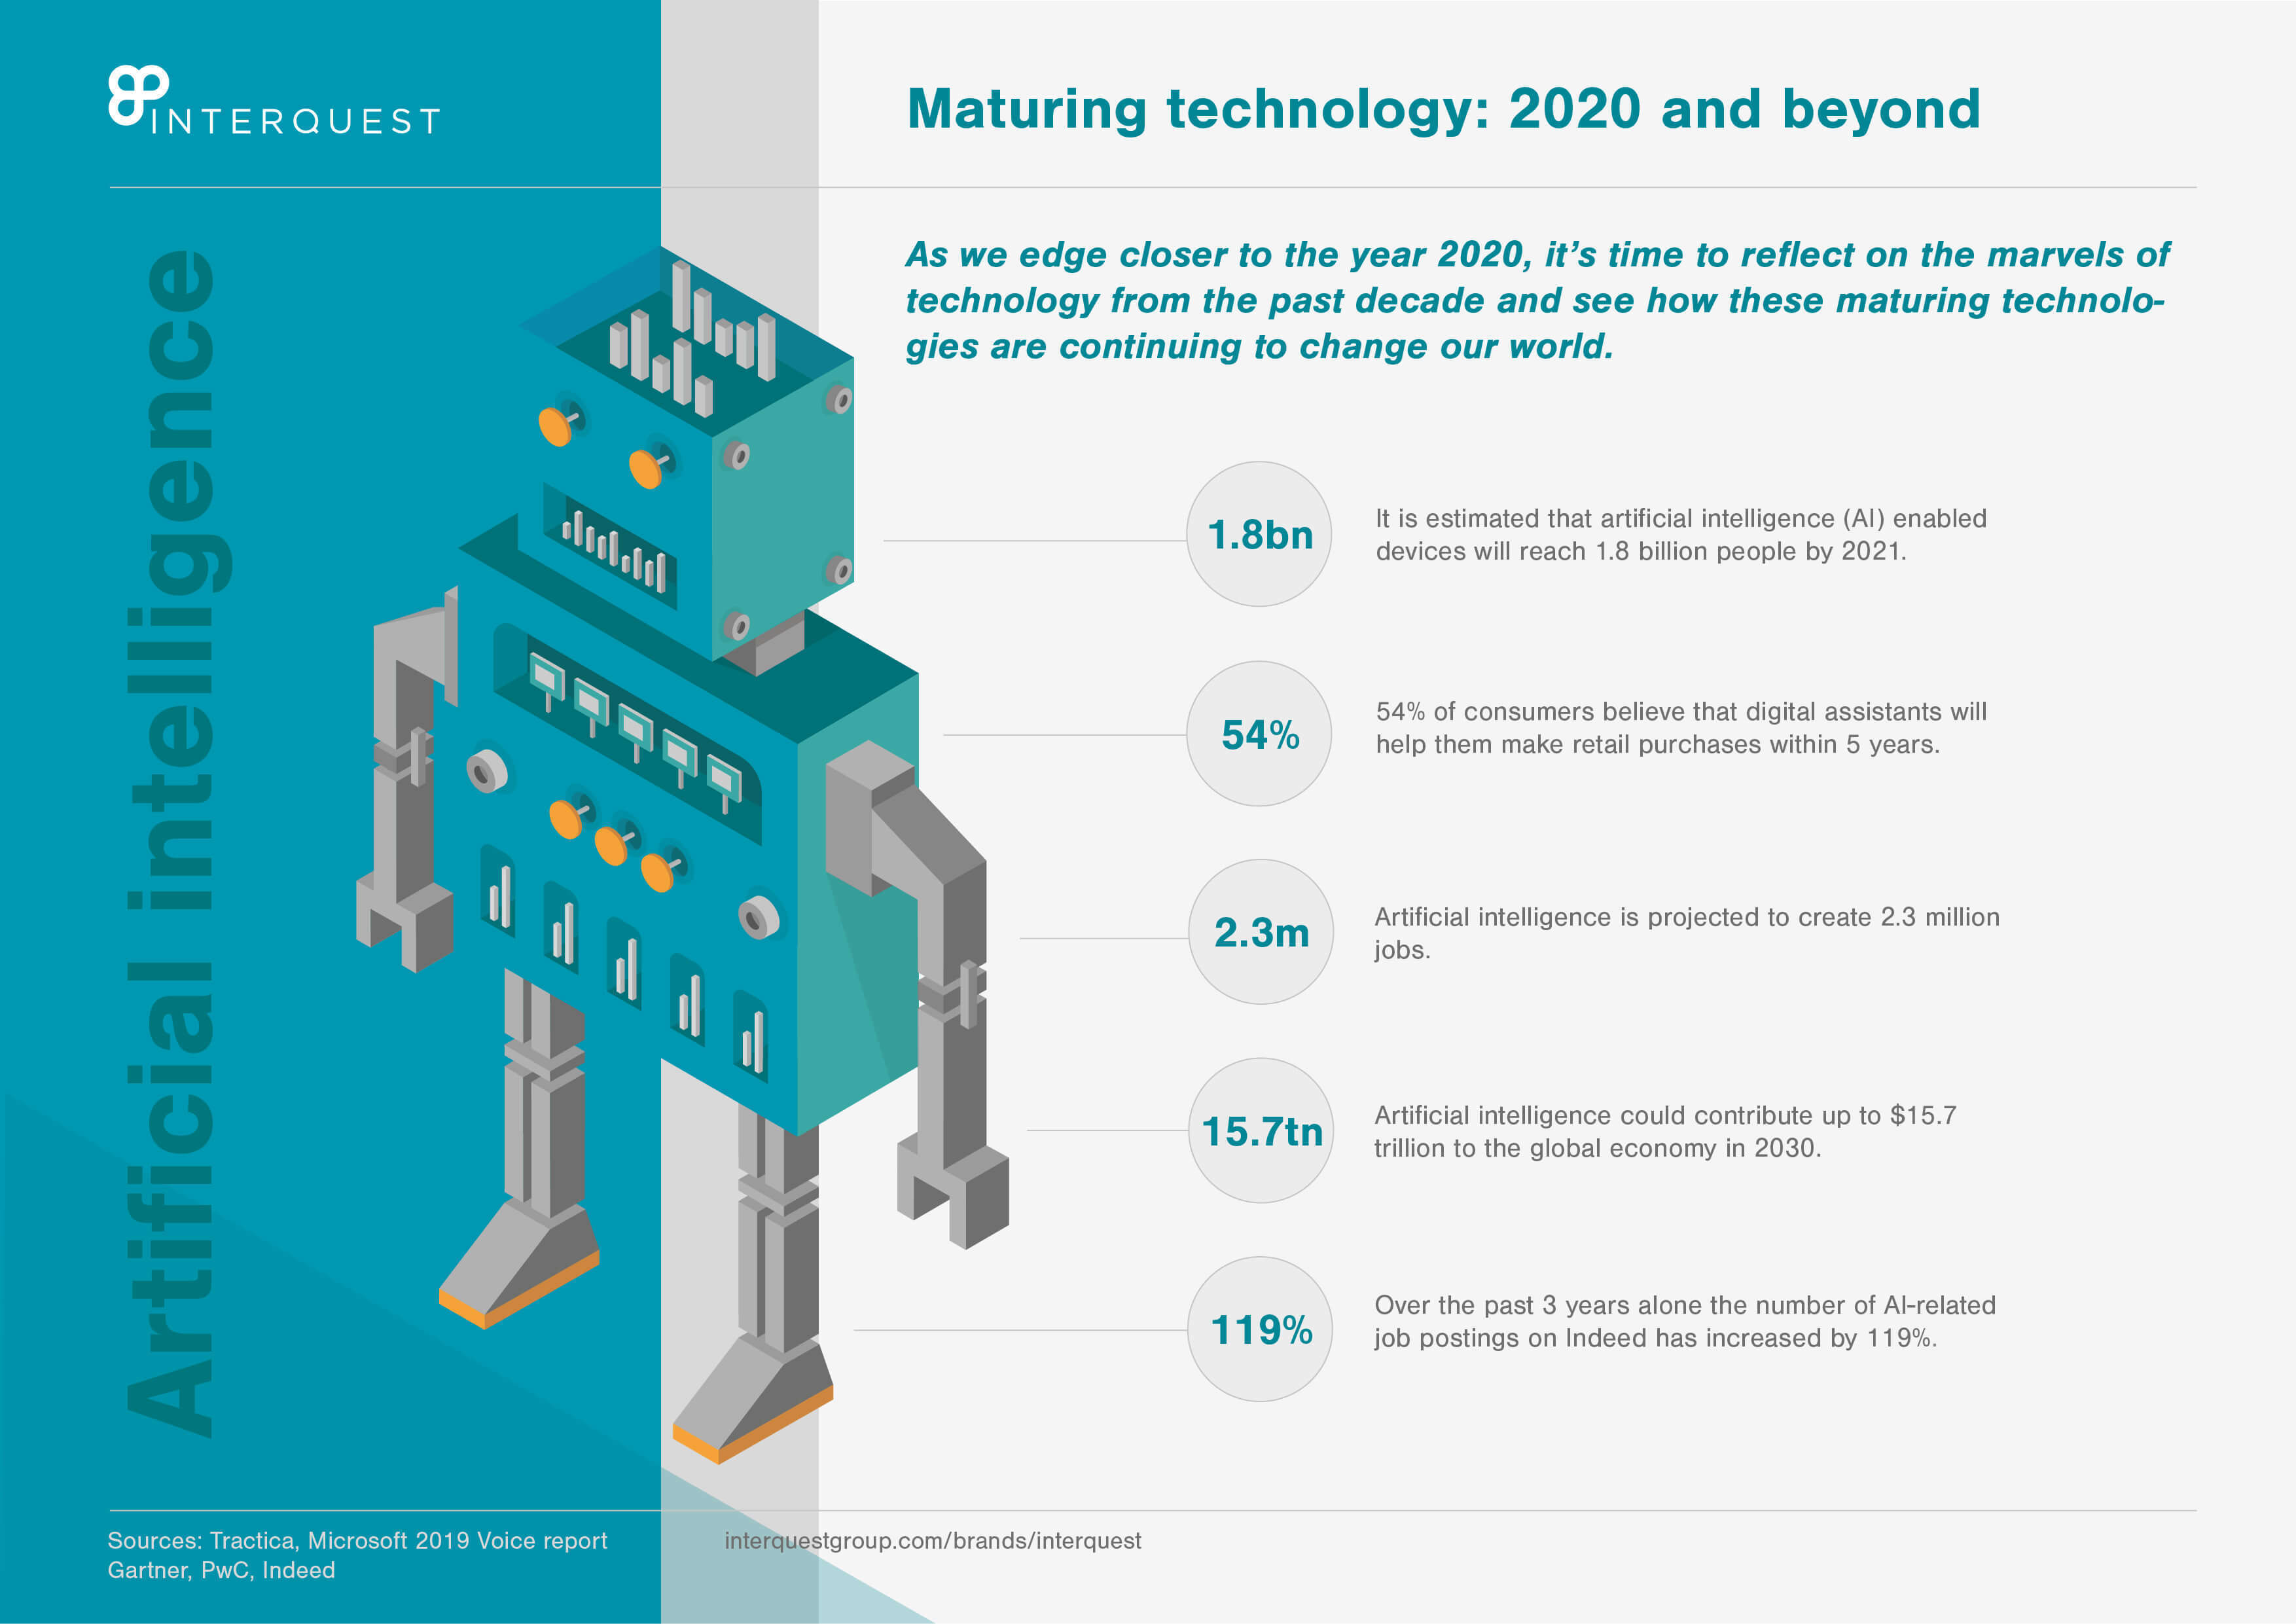 Maturing artificial intelligence technology: 2020 and beyond page 1